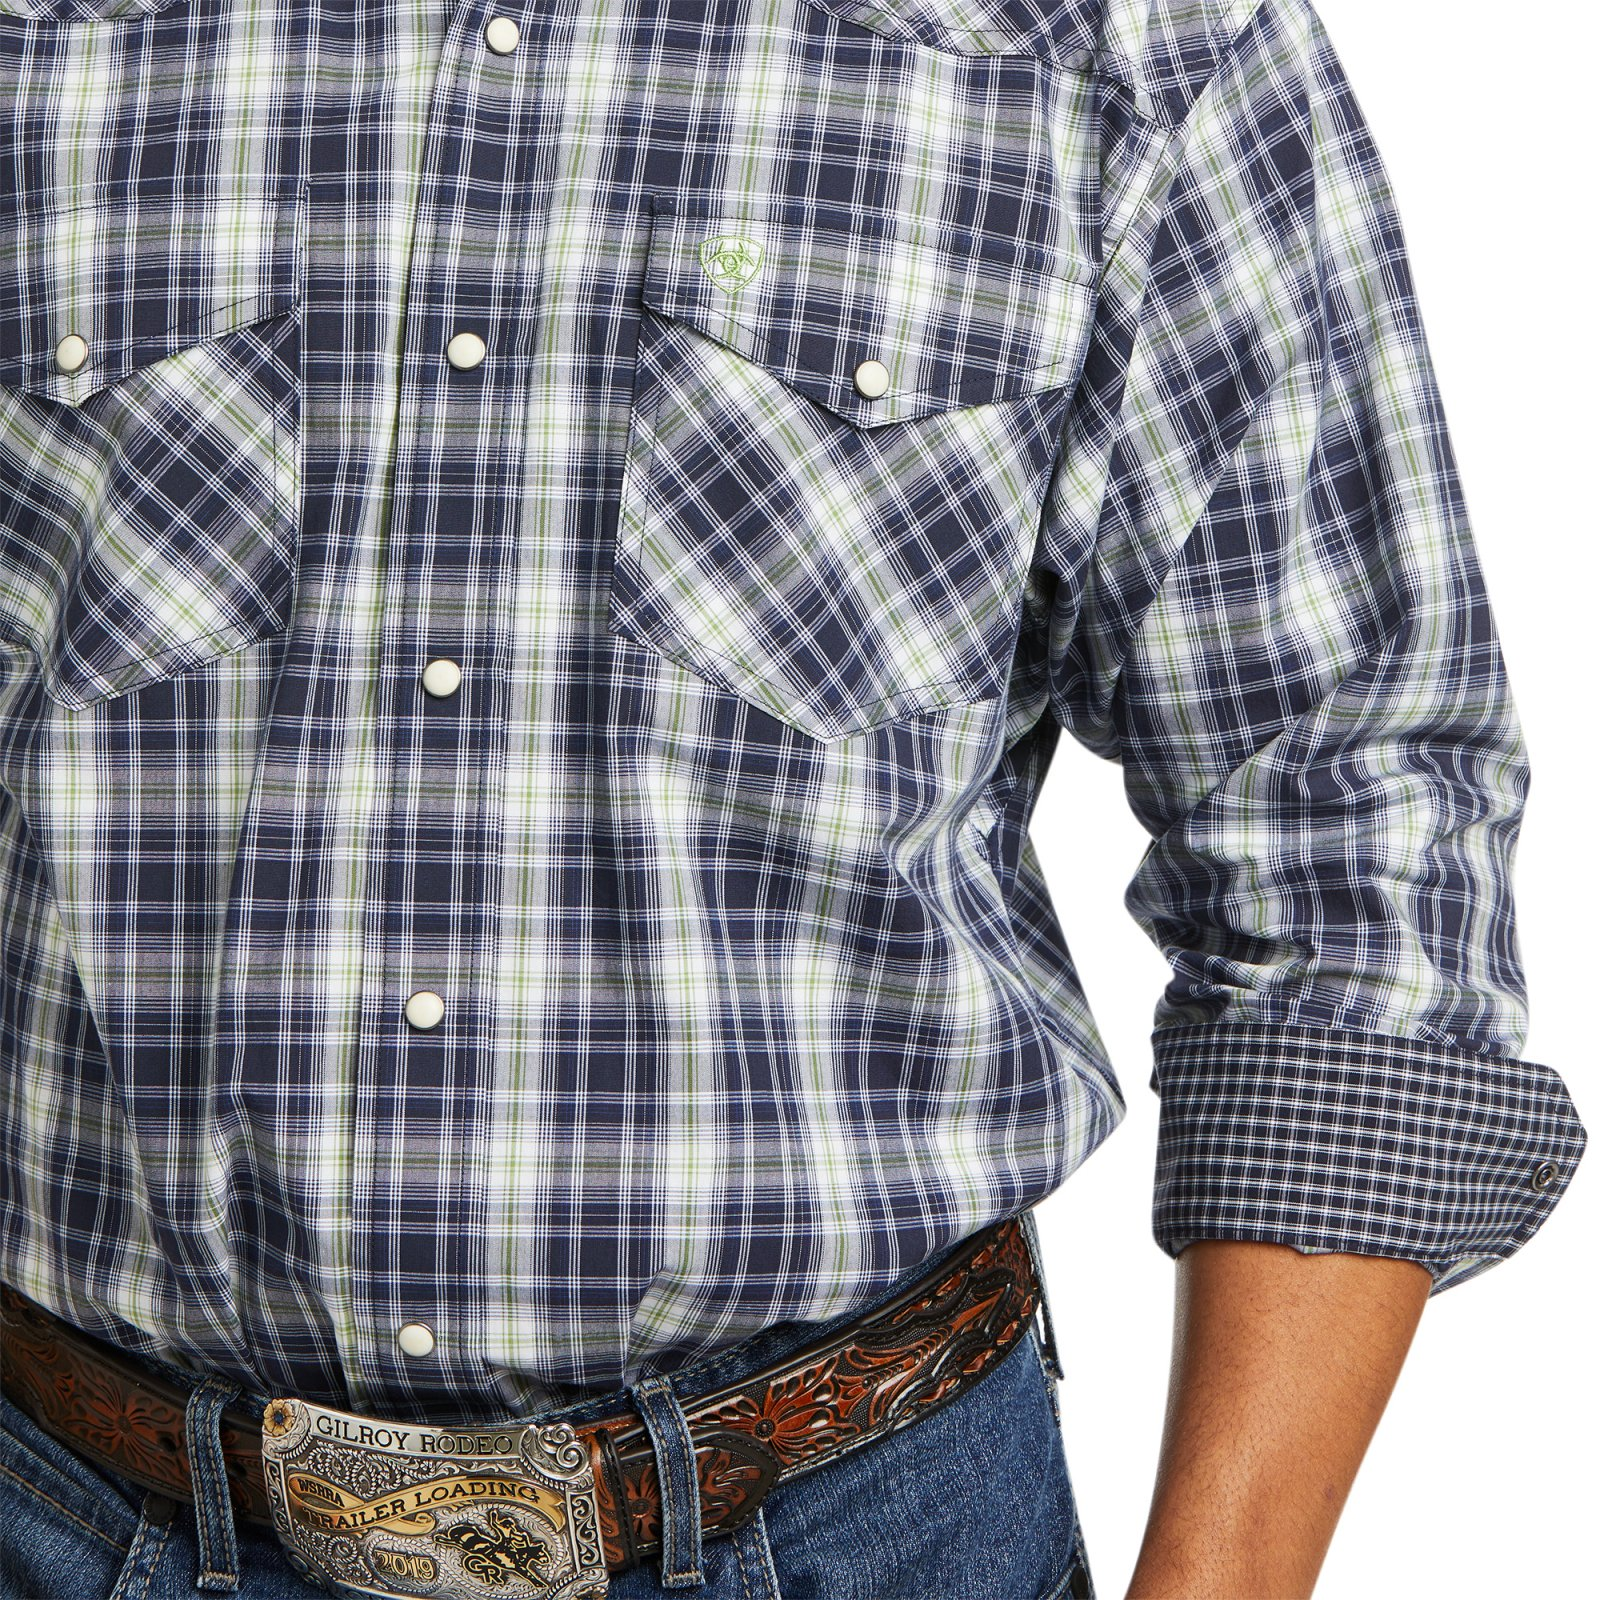 Relentless Performance Stretch Valorous from Ariat